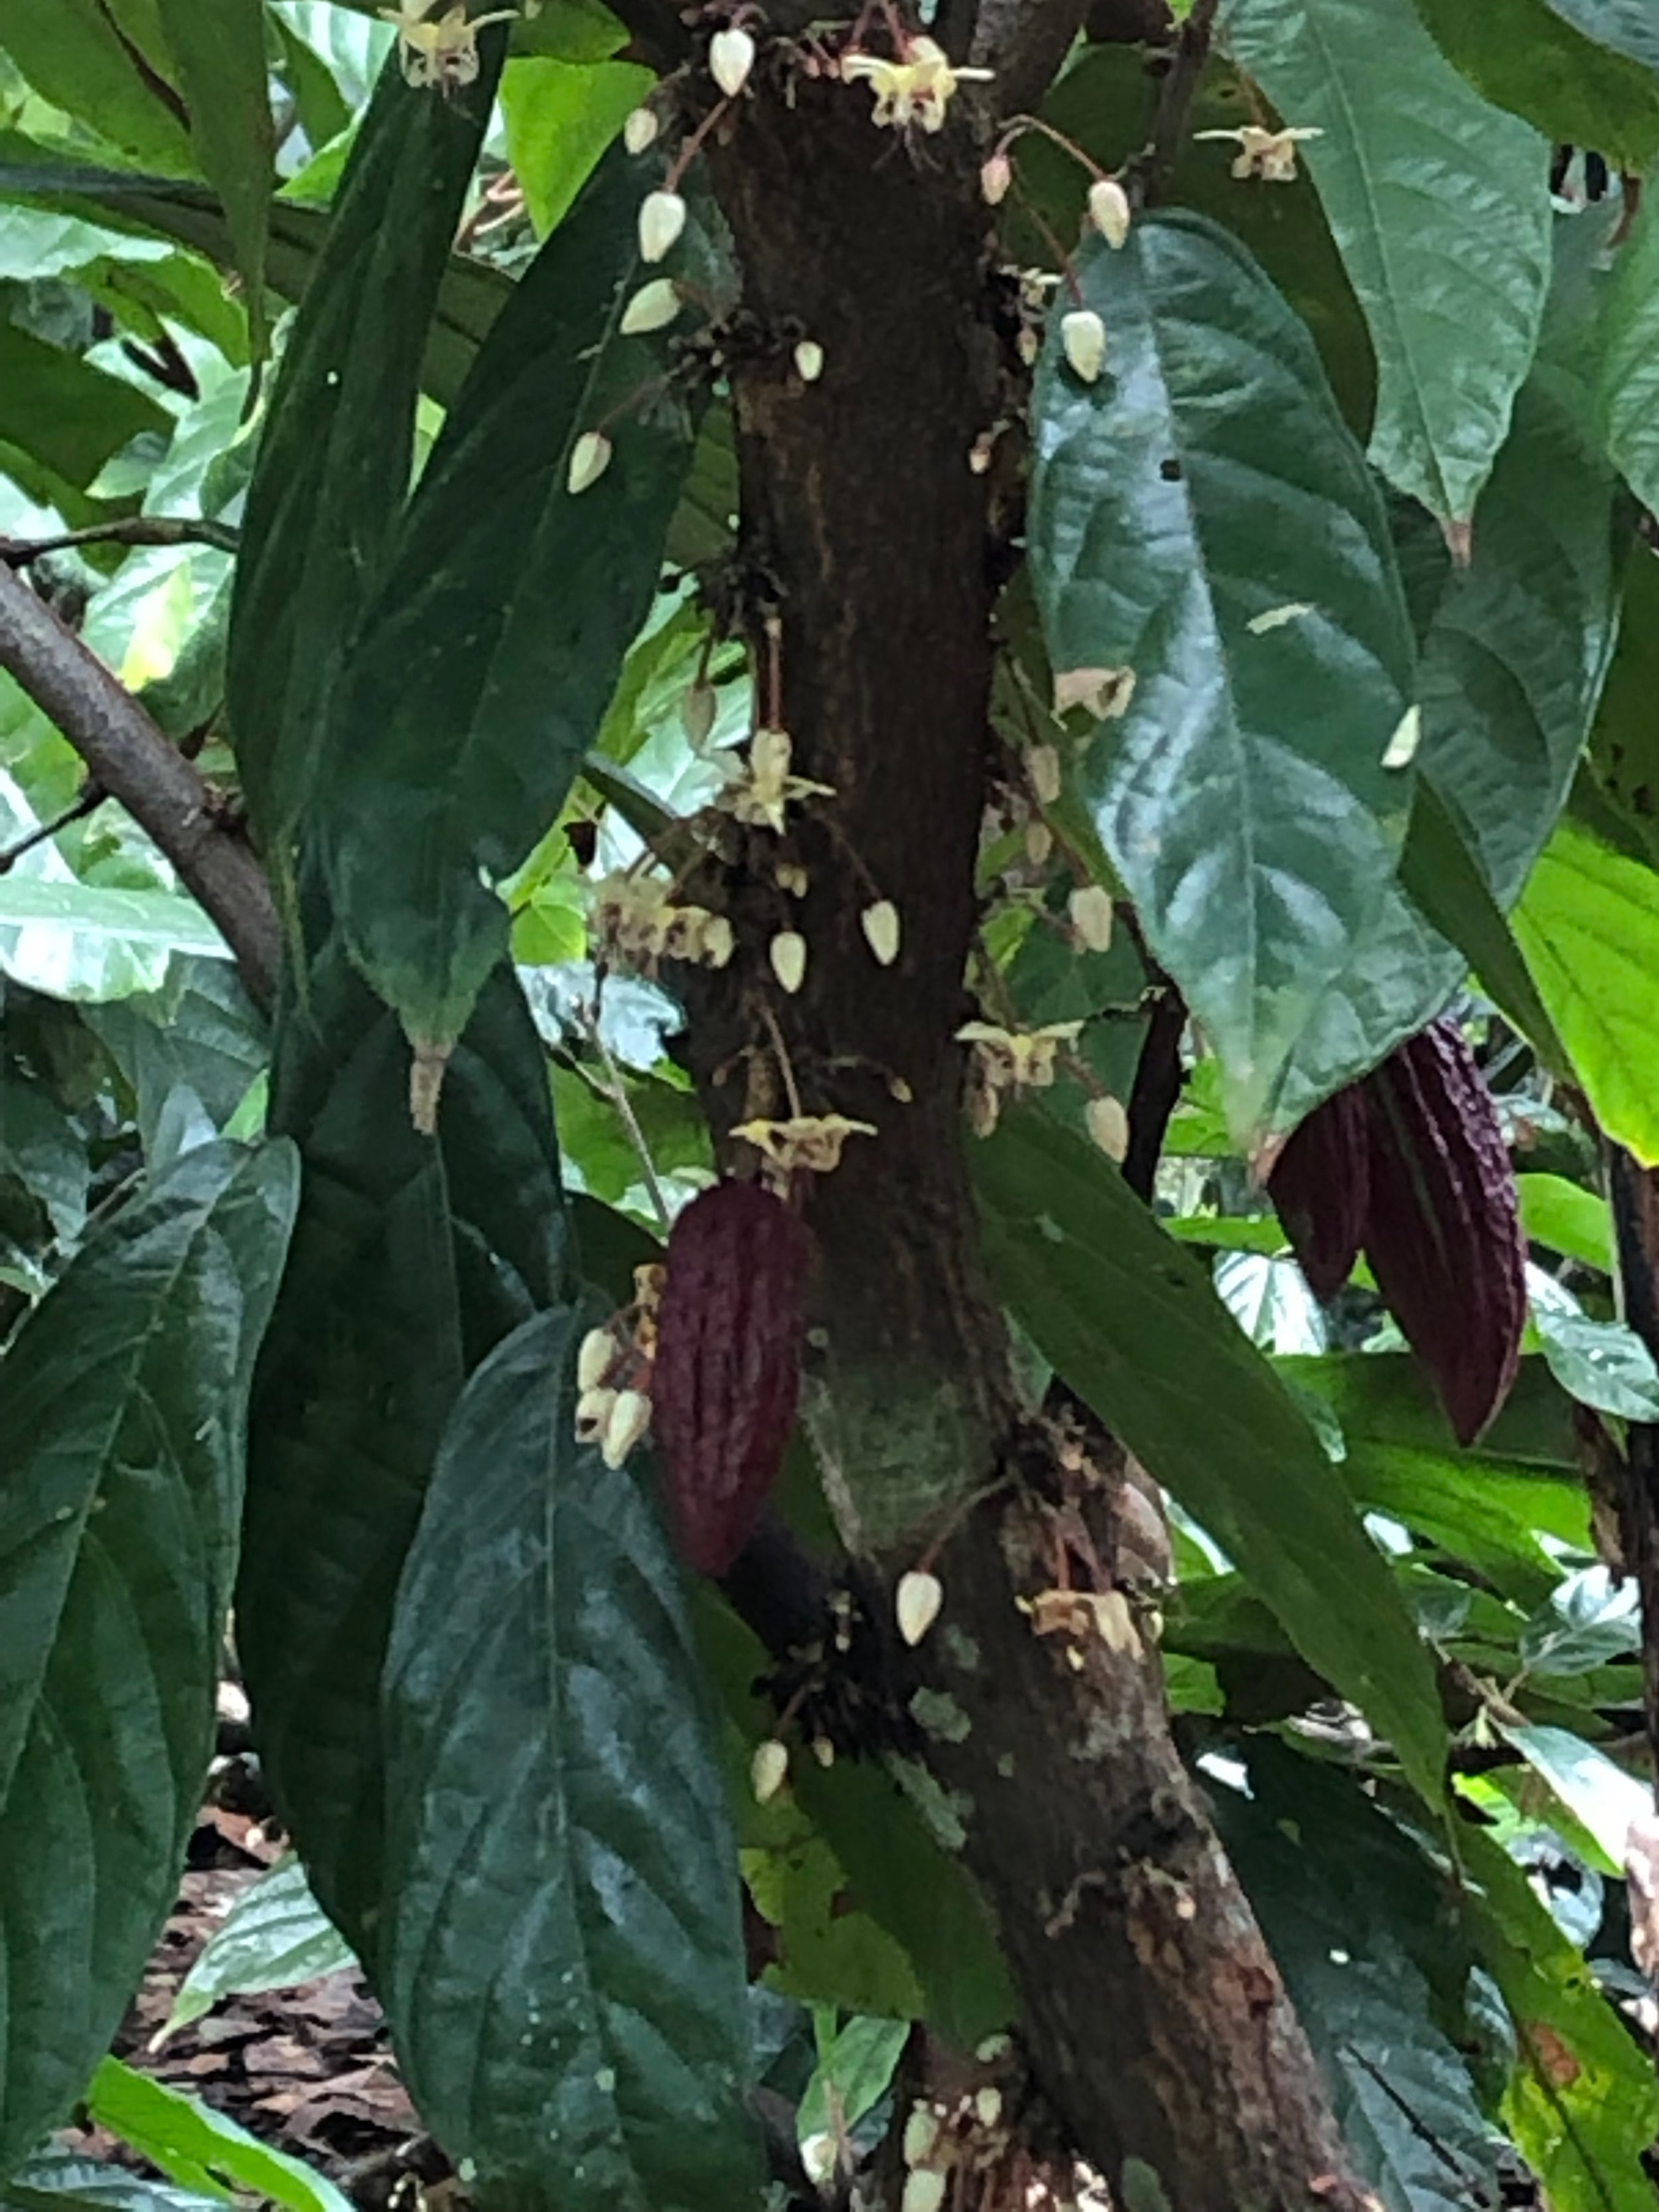 Cocoa tree flowers. They said that a species of mosquito is the pollinator.